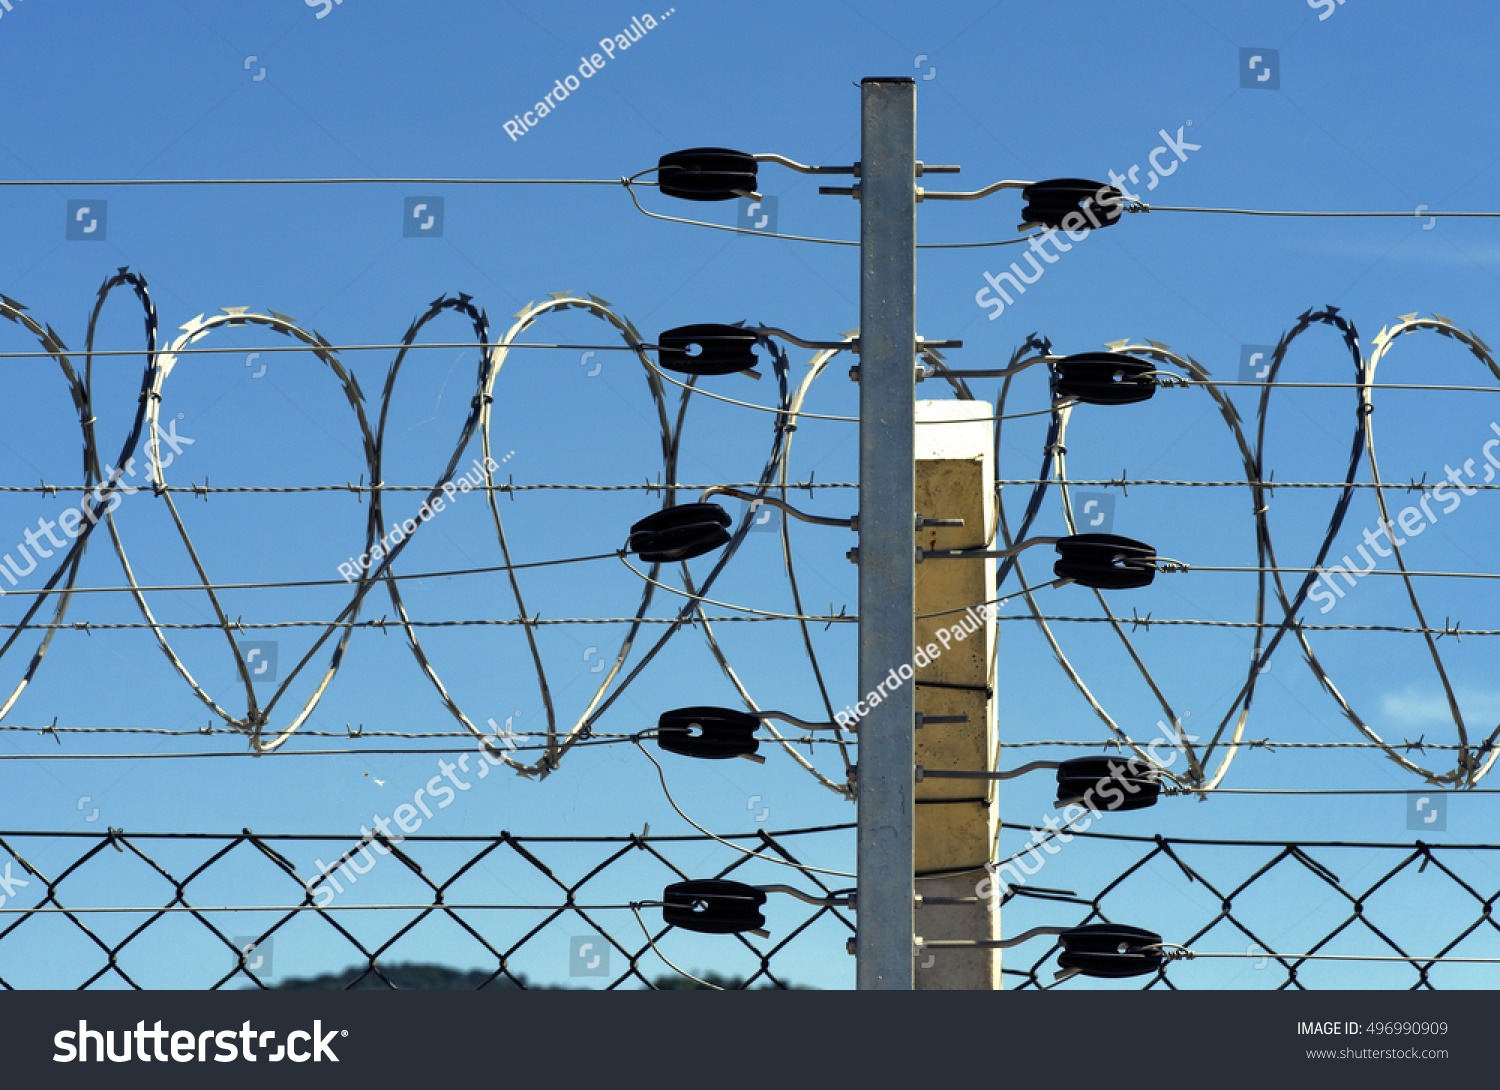 Detail Electric Fence Concertina Wire Seropedica Stock Photo Edit Wires Of With Rj Brazil January 7